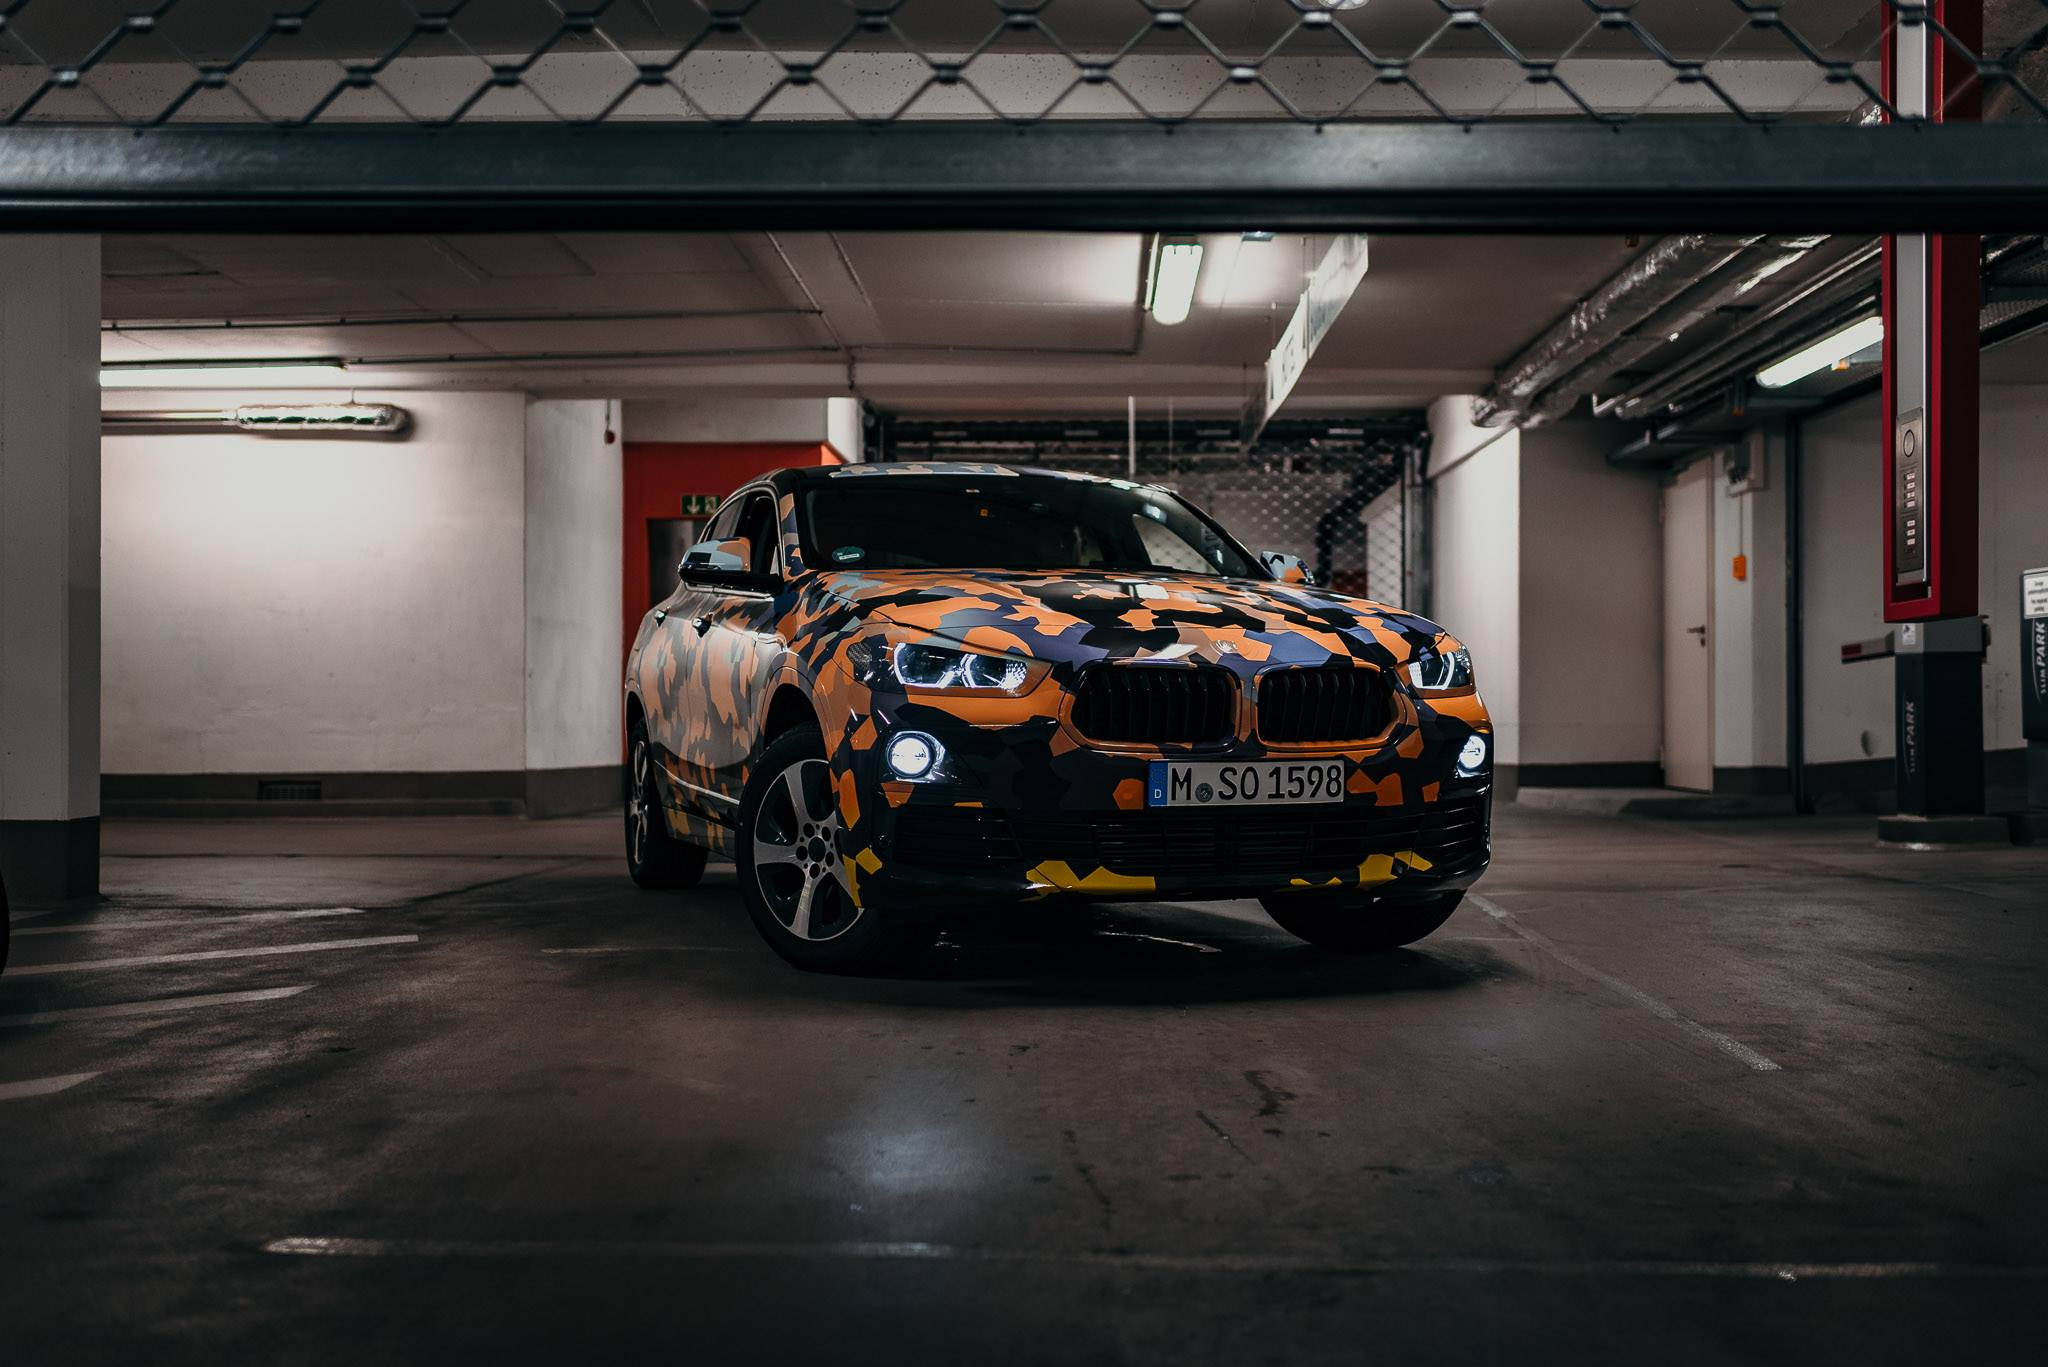 Brian-jessel-bmw-sport-activity-coupe